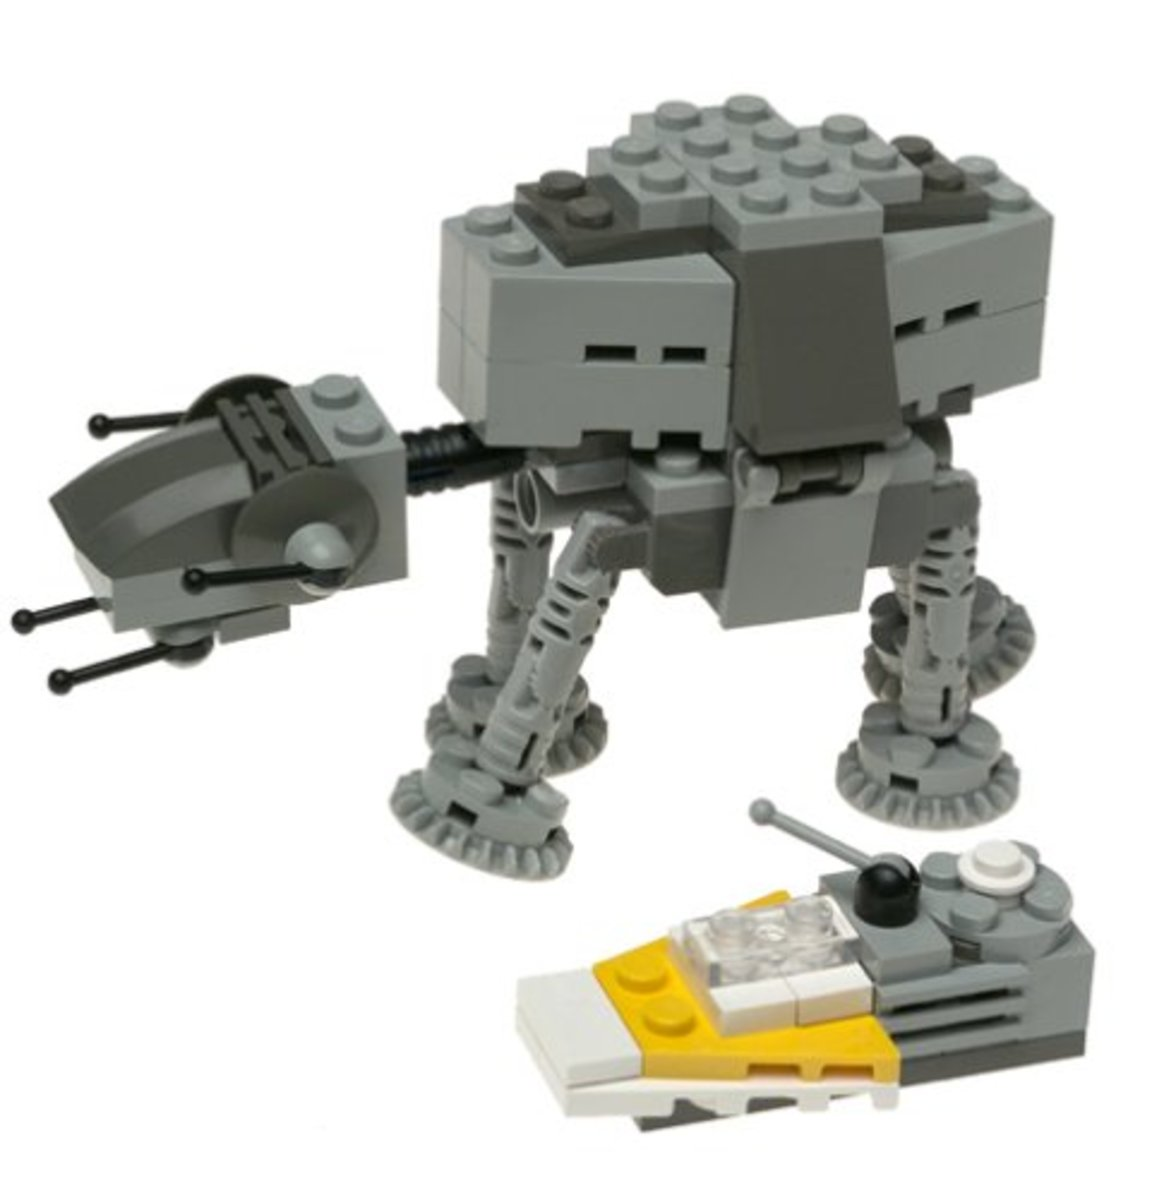 LEGO Star Wars Mini AT-AT 4489 Assembled